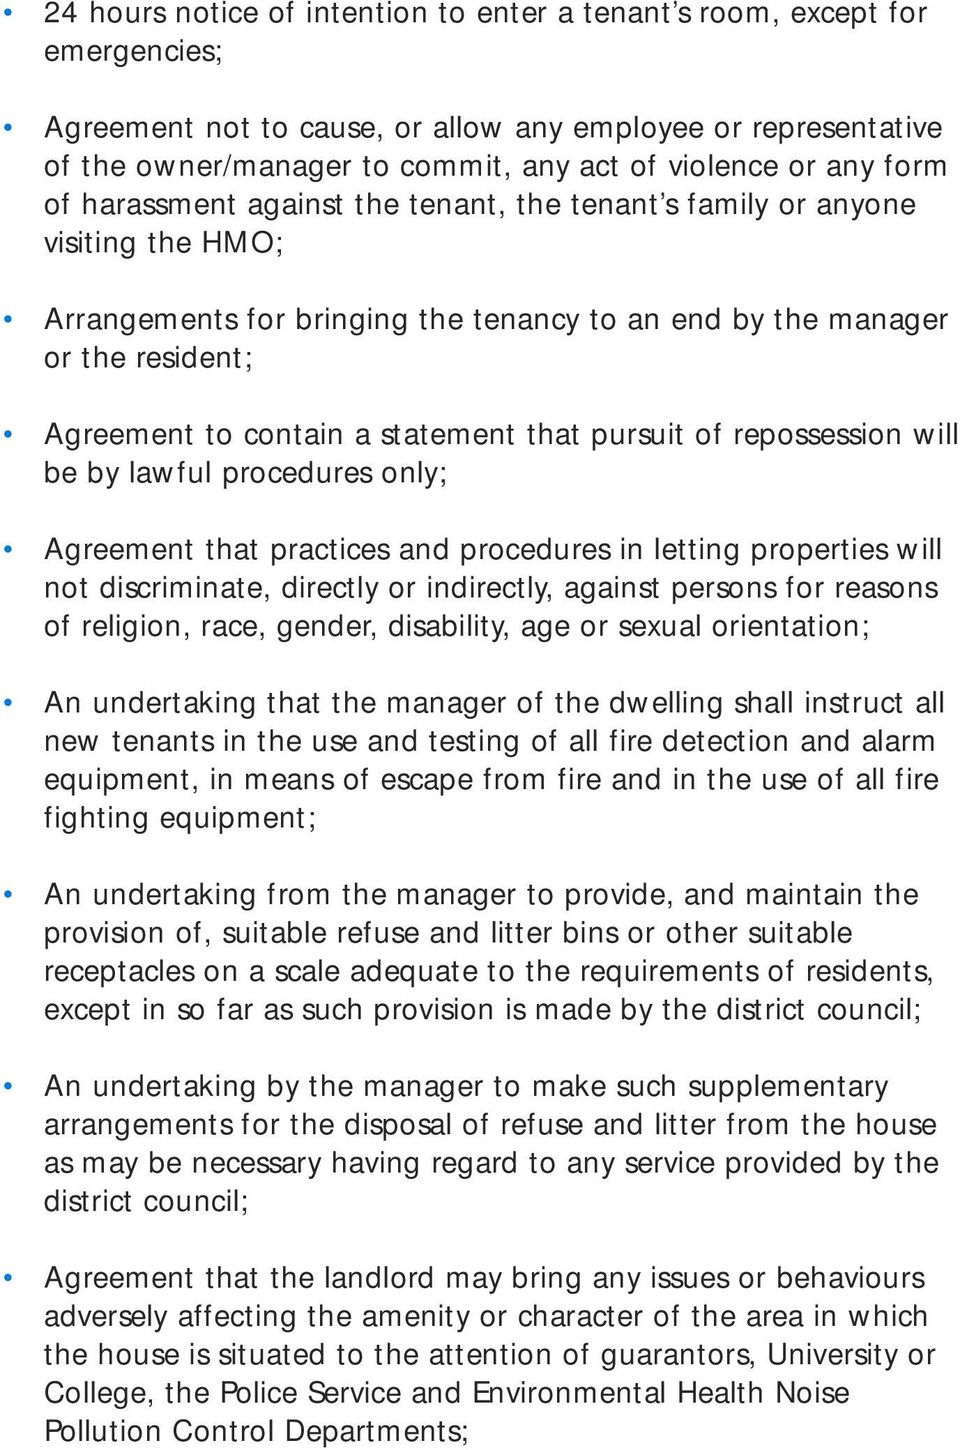 statement that pursuit of repossession will be by lawful procedures only; Agreement that practices and procedures in letting properties will not discriminate, directly or indirectly, against persons